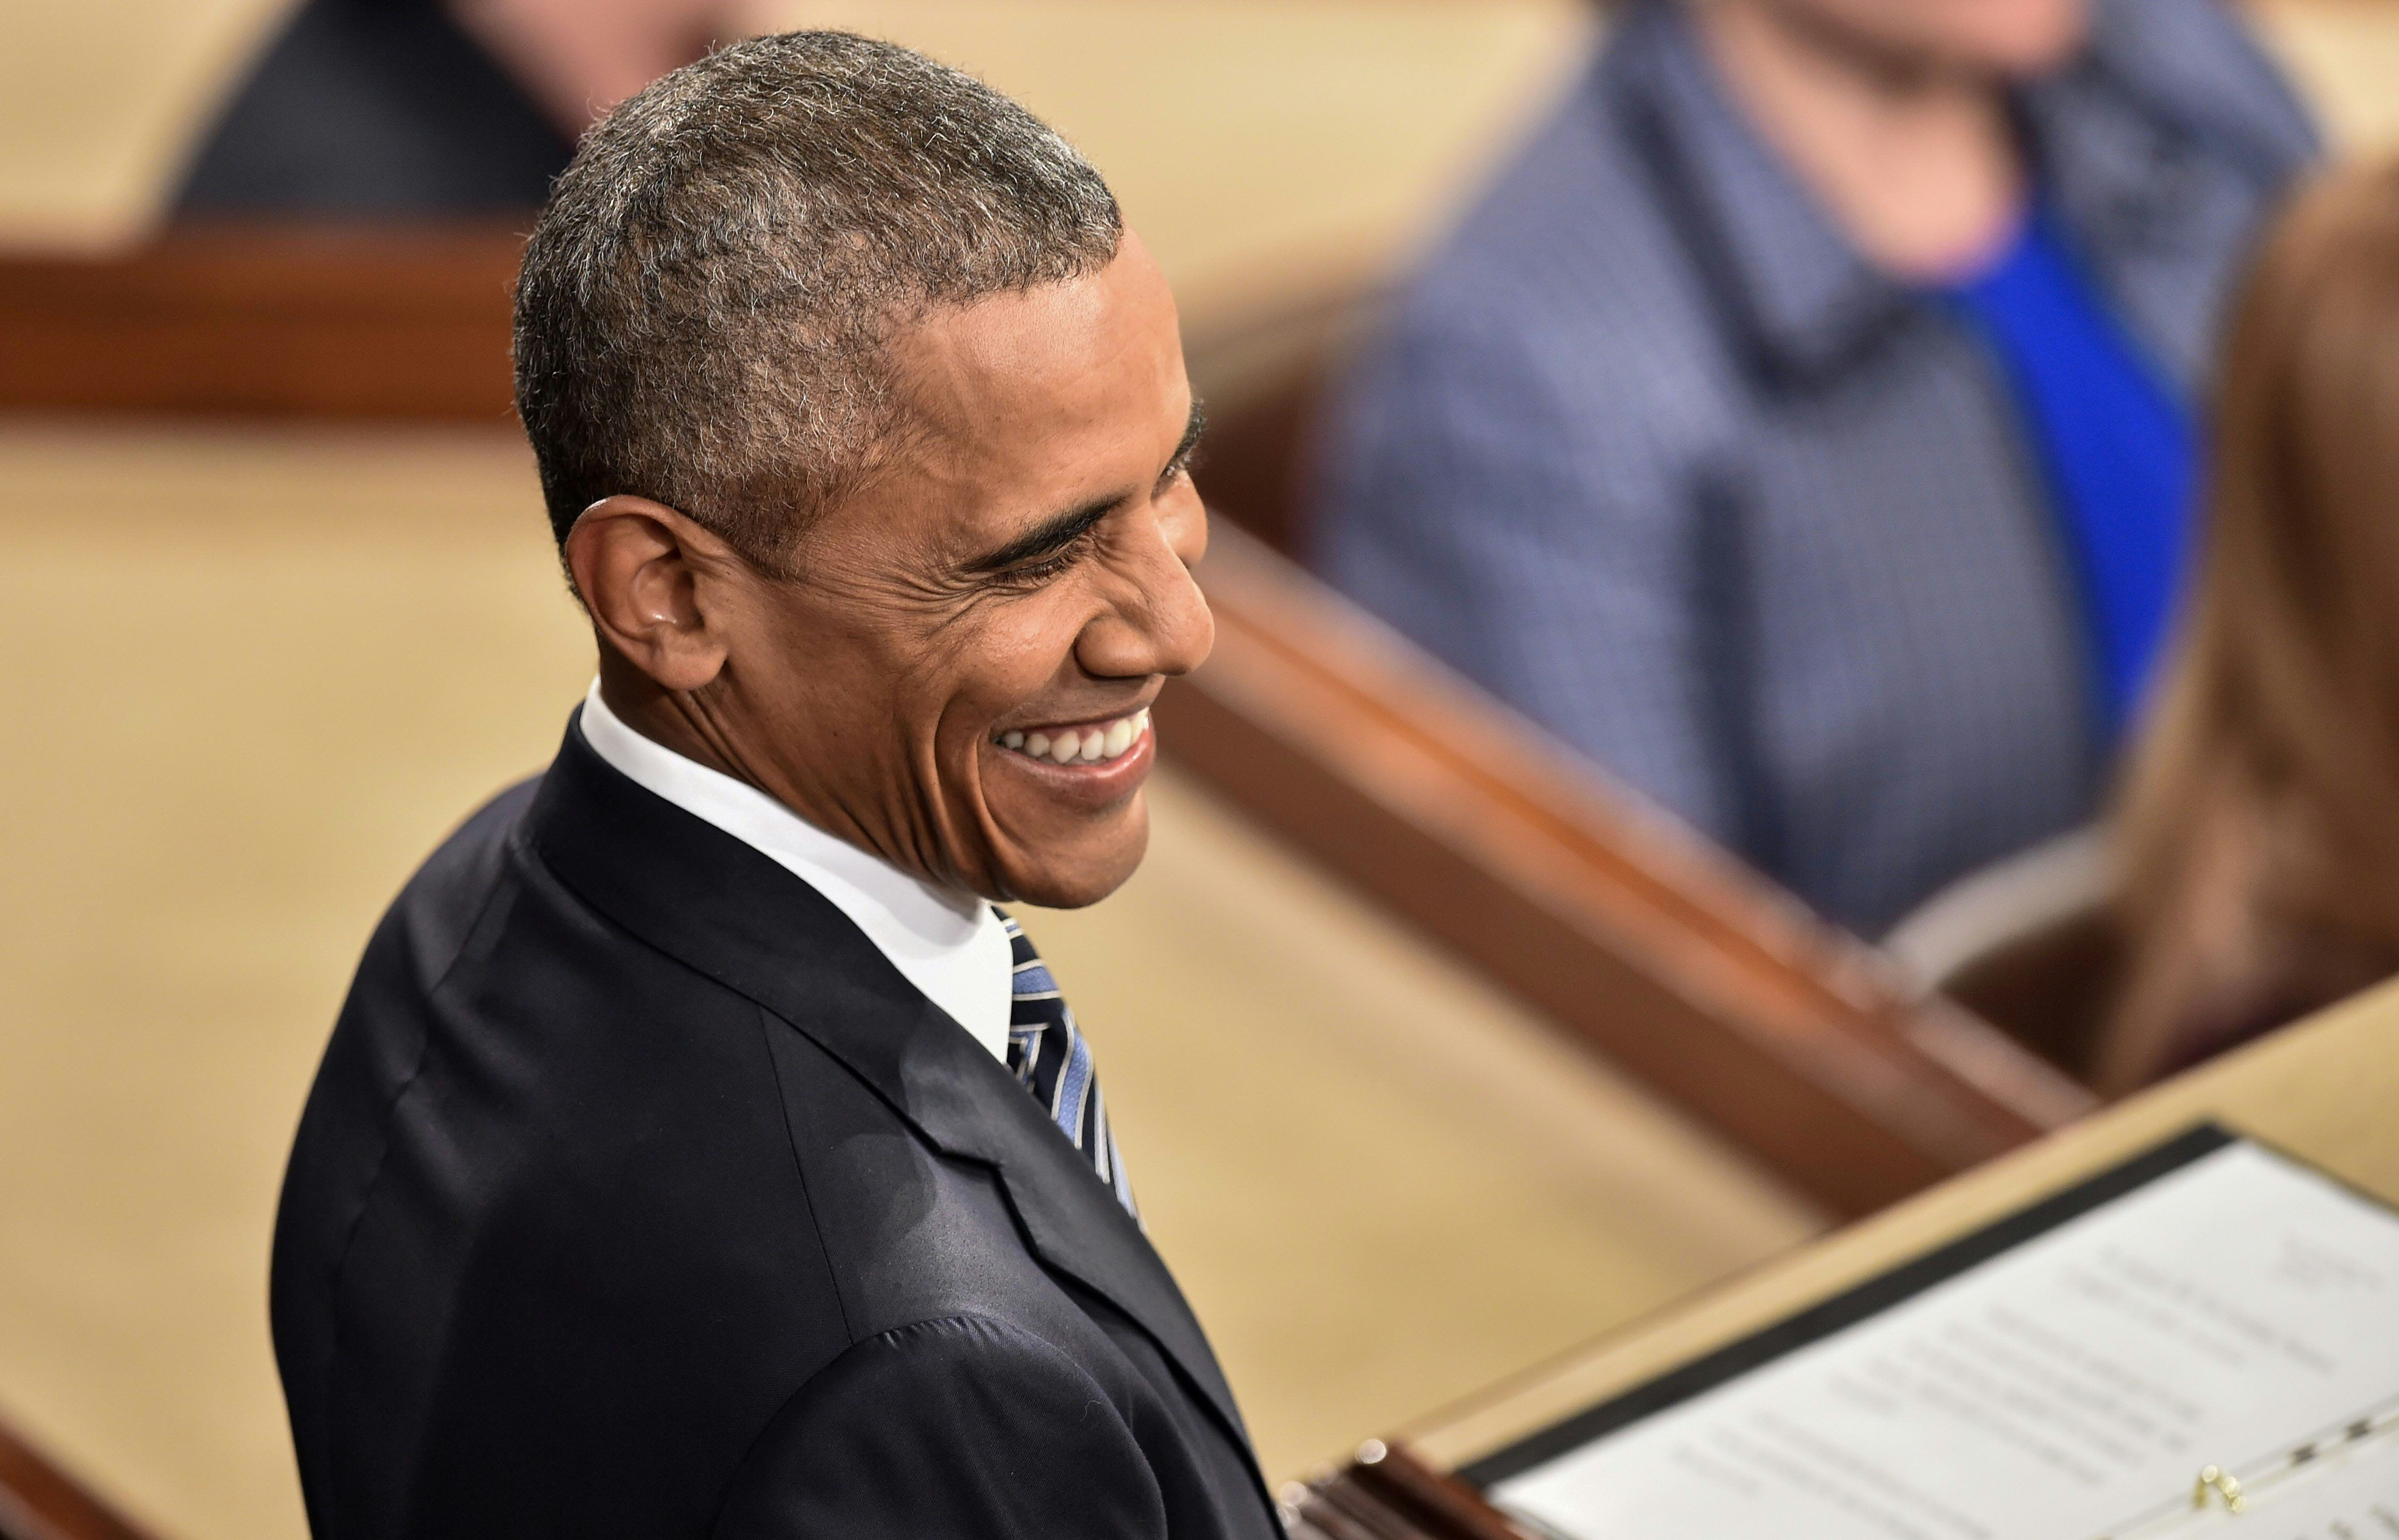 US President Barack Obama smiles as he arrives to deliver the State of the Union address at the US Capitol in Washington, DC, on January 12, 2016.  Obama gives his final State of the Union address, perhaps the last opportunity of his presidency to sway a national audience and frame the 2016 election.    / AFP / NICHOLAS KAMM        (Photo credit should read NICHOLAS KAMM/AFP/Getty Images)